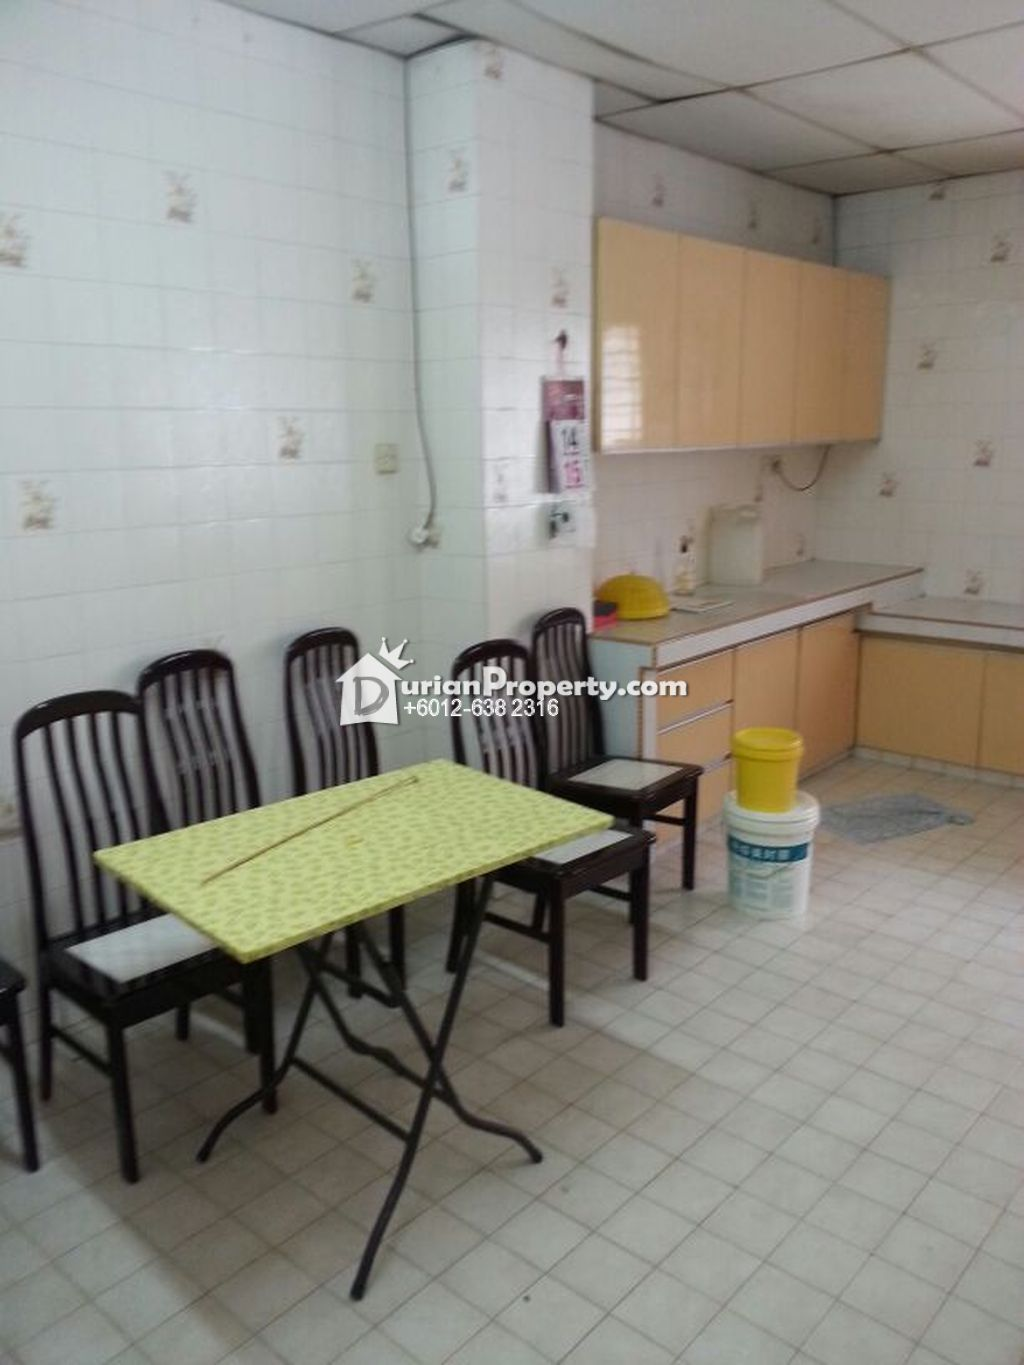 Picturesque Terrace House For Sale At Happy Garden Old Klang Road For Rm  With Lovable Terrace House For Sale At Happy Garden Old Klang Road With Alluring Garden Shovel Also Chiswick House And Gardens Trust In Addition Kew Gardens Area And Montagu On The Gardens As Well As Holyrood Palace Gardens Additionally Gardener Wirral From Durianpropertycommy With   Lovable Terrace House For Sale At Happy Garden Old Klang Road For Rm  With Alluring Terrace House For Sale At Happy Garden Old Klang Road And Picturesque Garden Shovel Also Chiswick House And Gardens Trust In Addition Kew Gardens Area From Durianpropertycommy